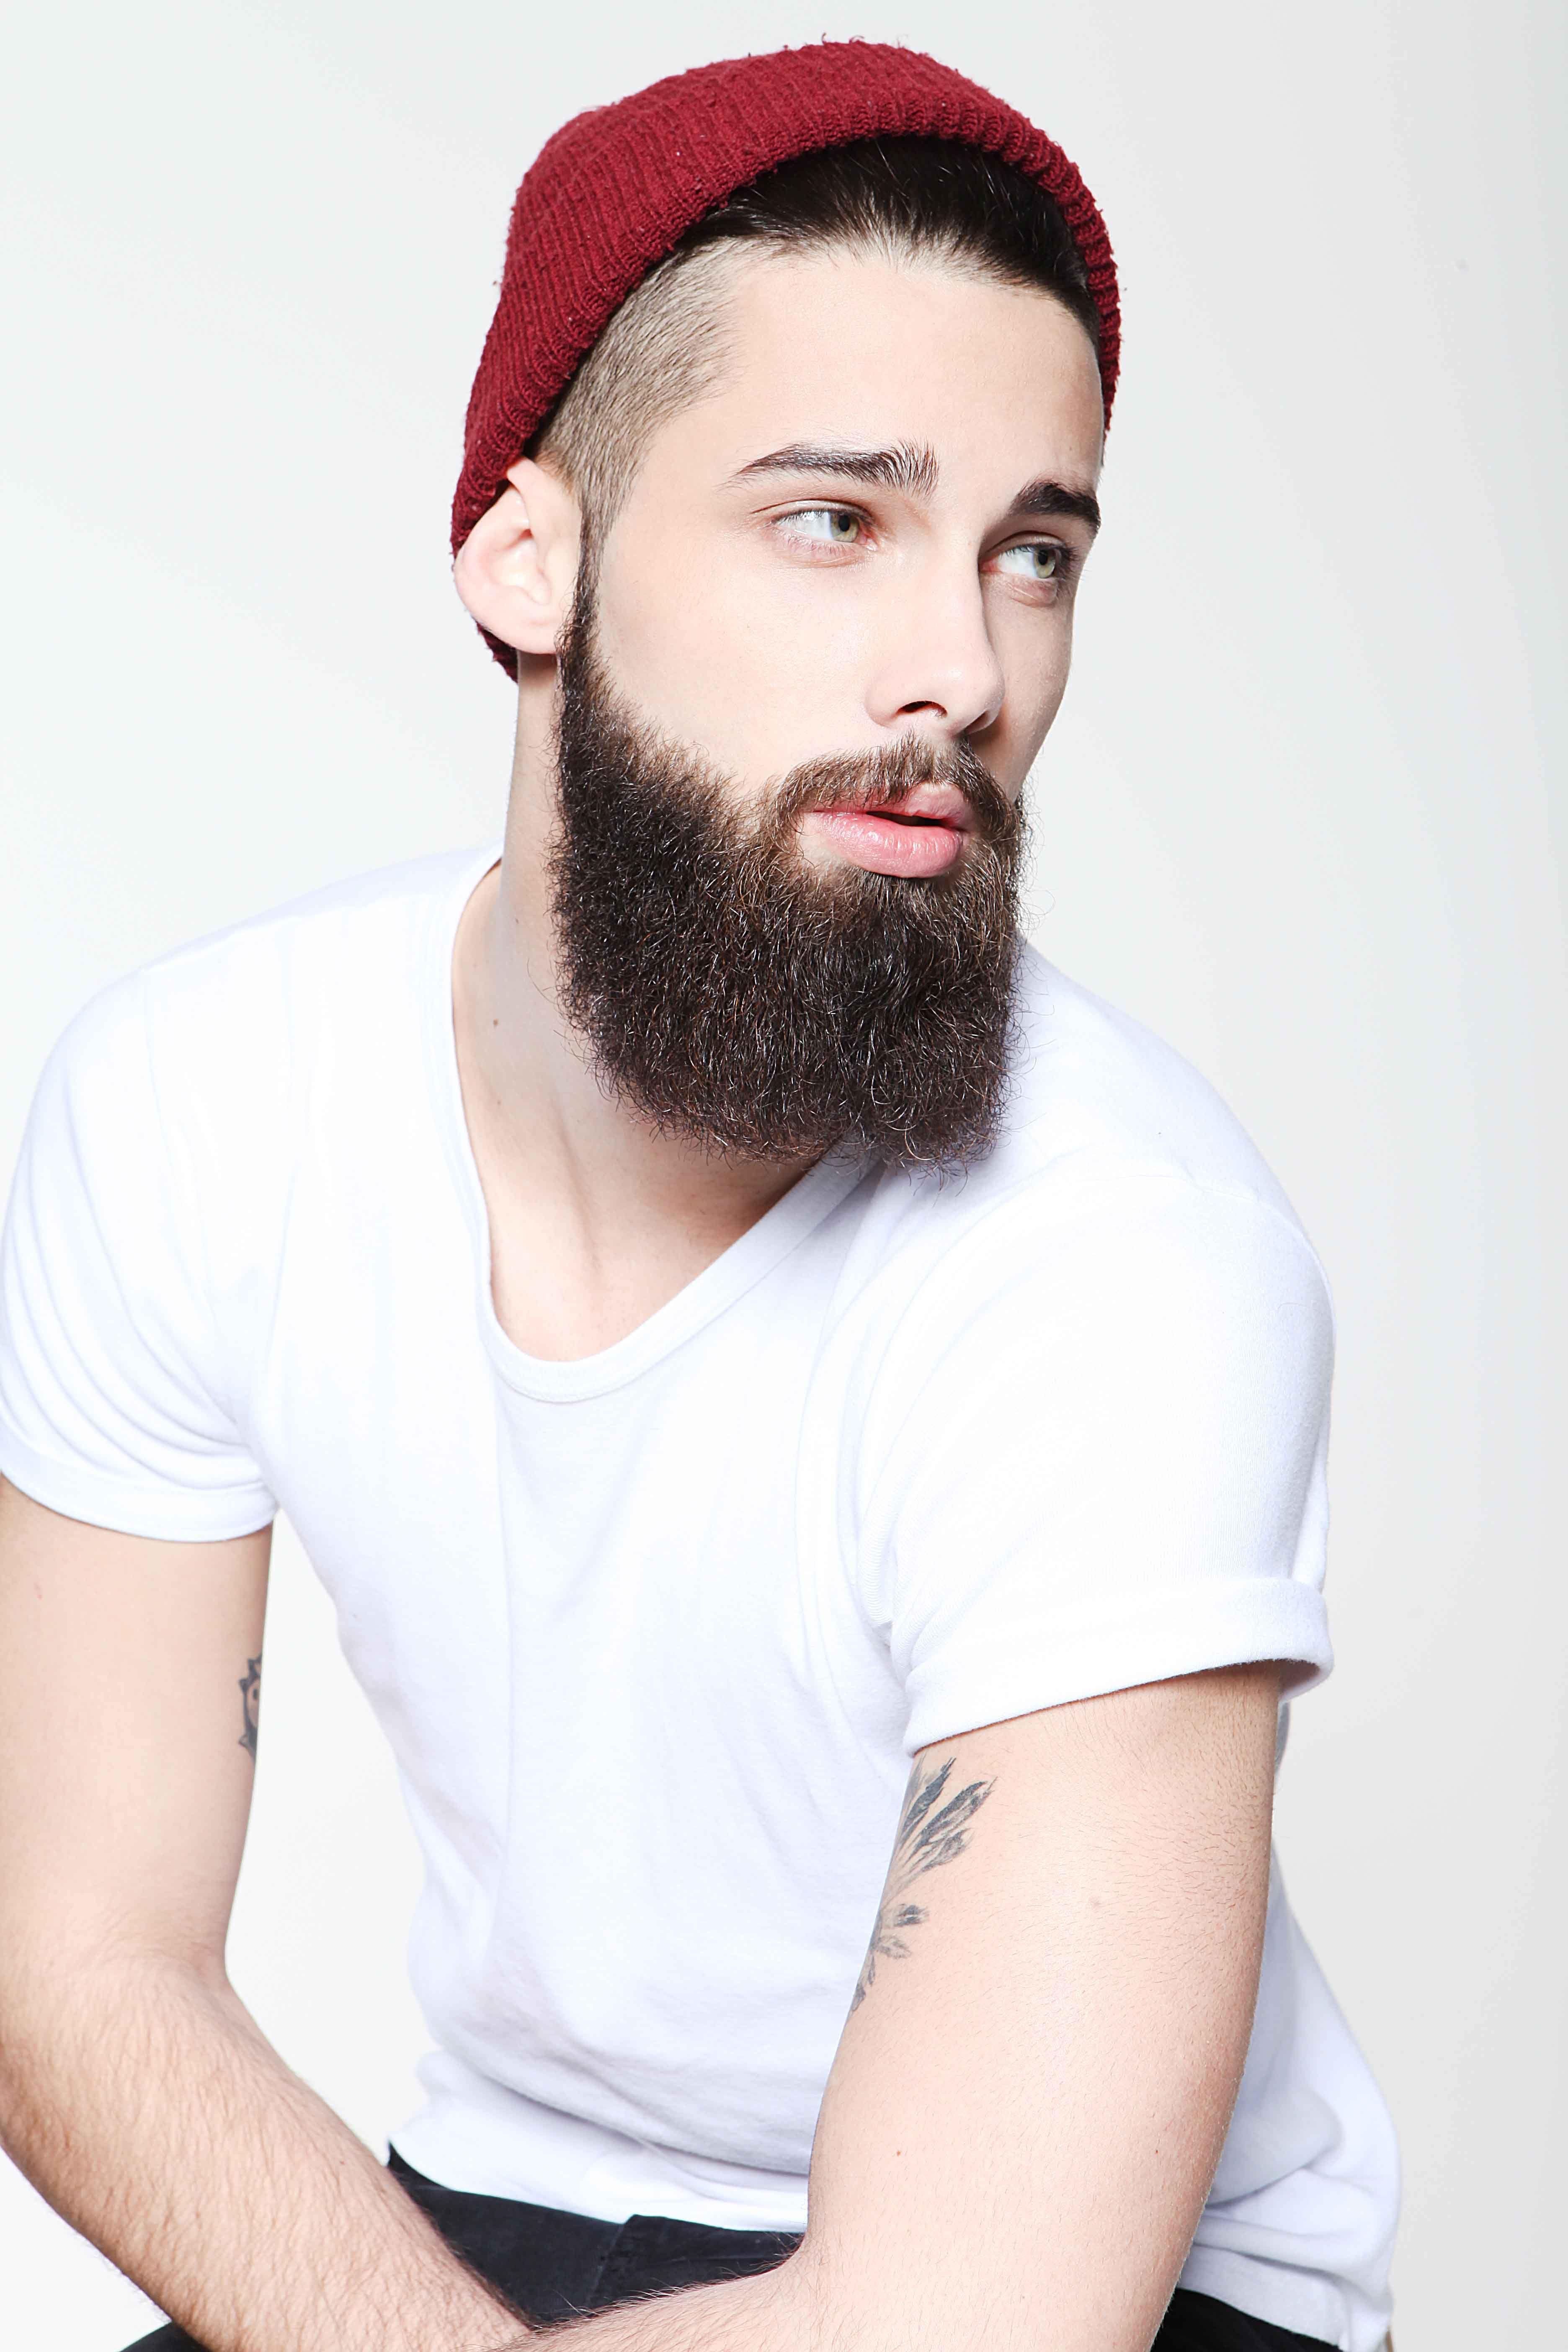 Mens haircuts with beards beanies on guys  jimmy launay  style  mens  pinterest  beanies